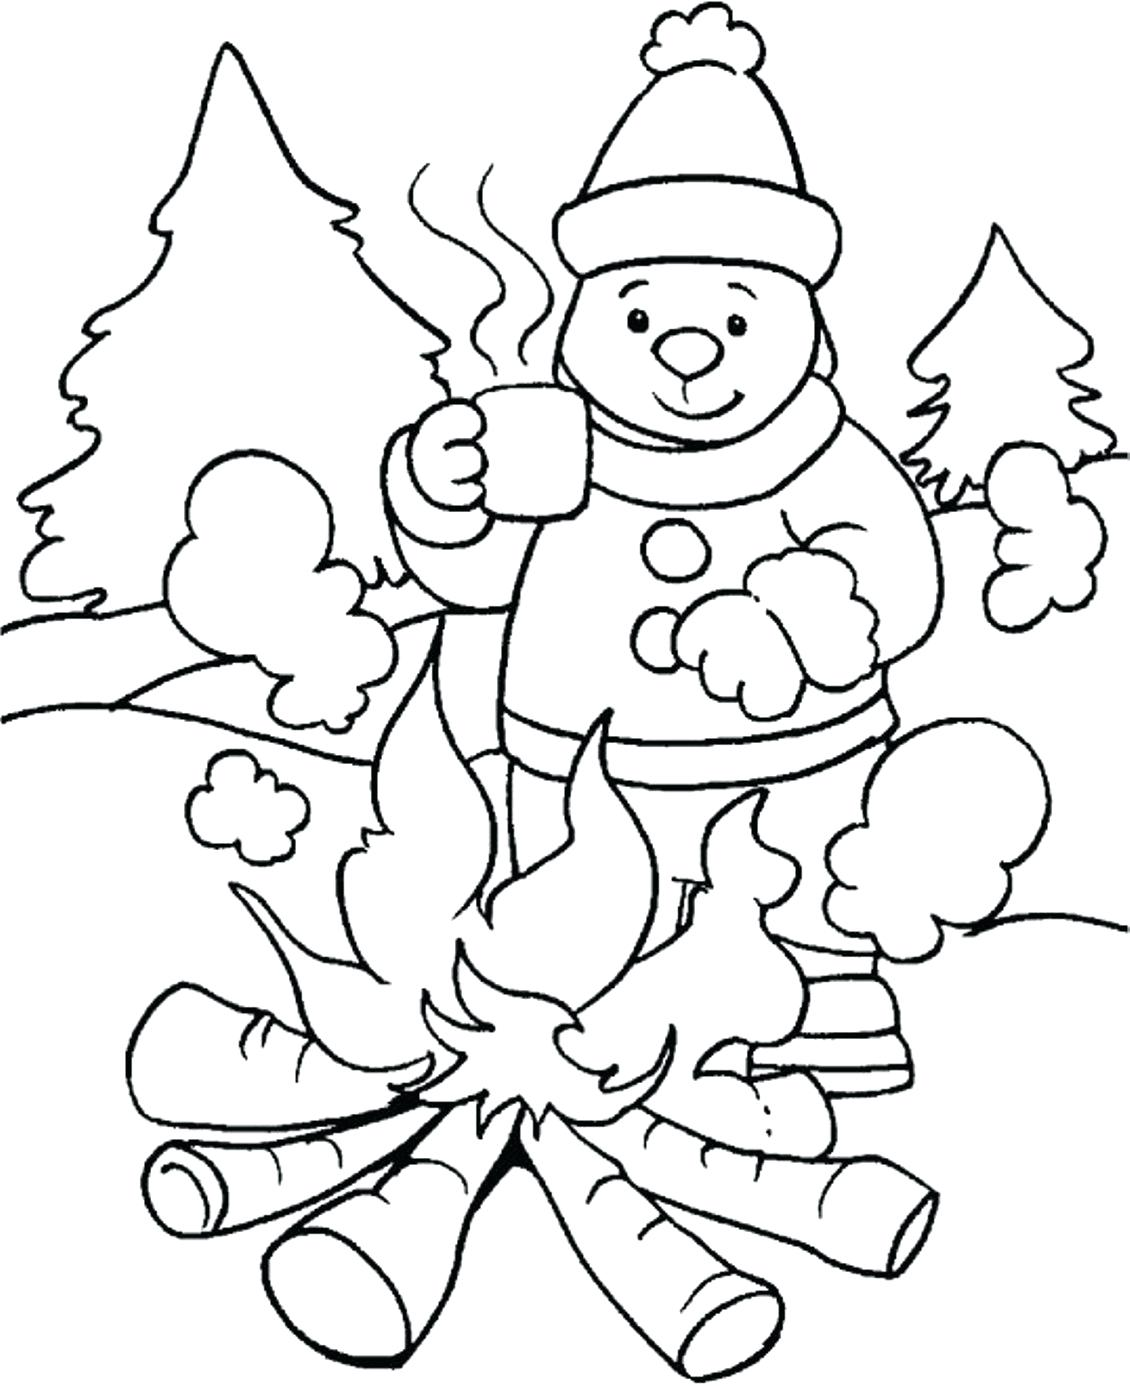 Winter Scene Drawing at GetDrawings.com | Free for personal use ...